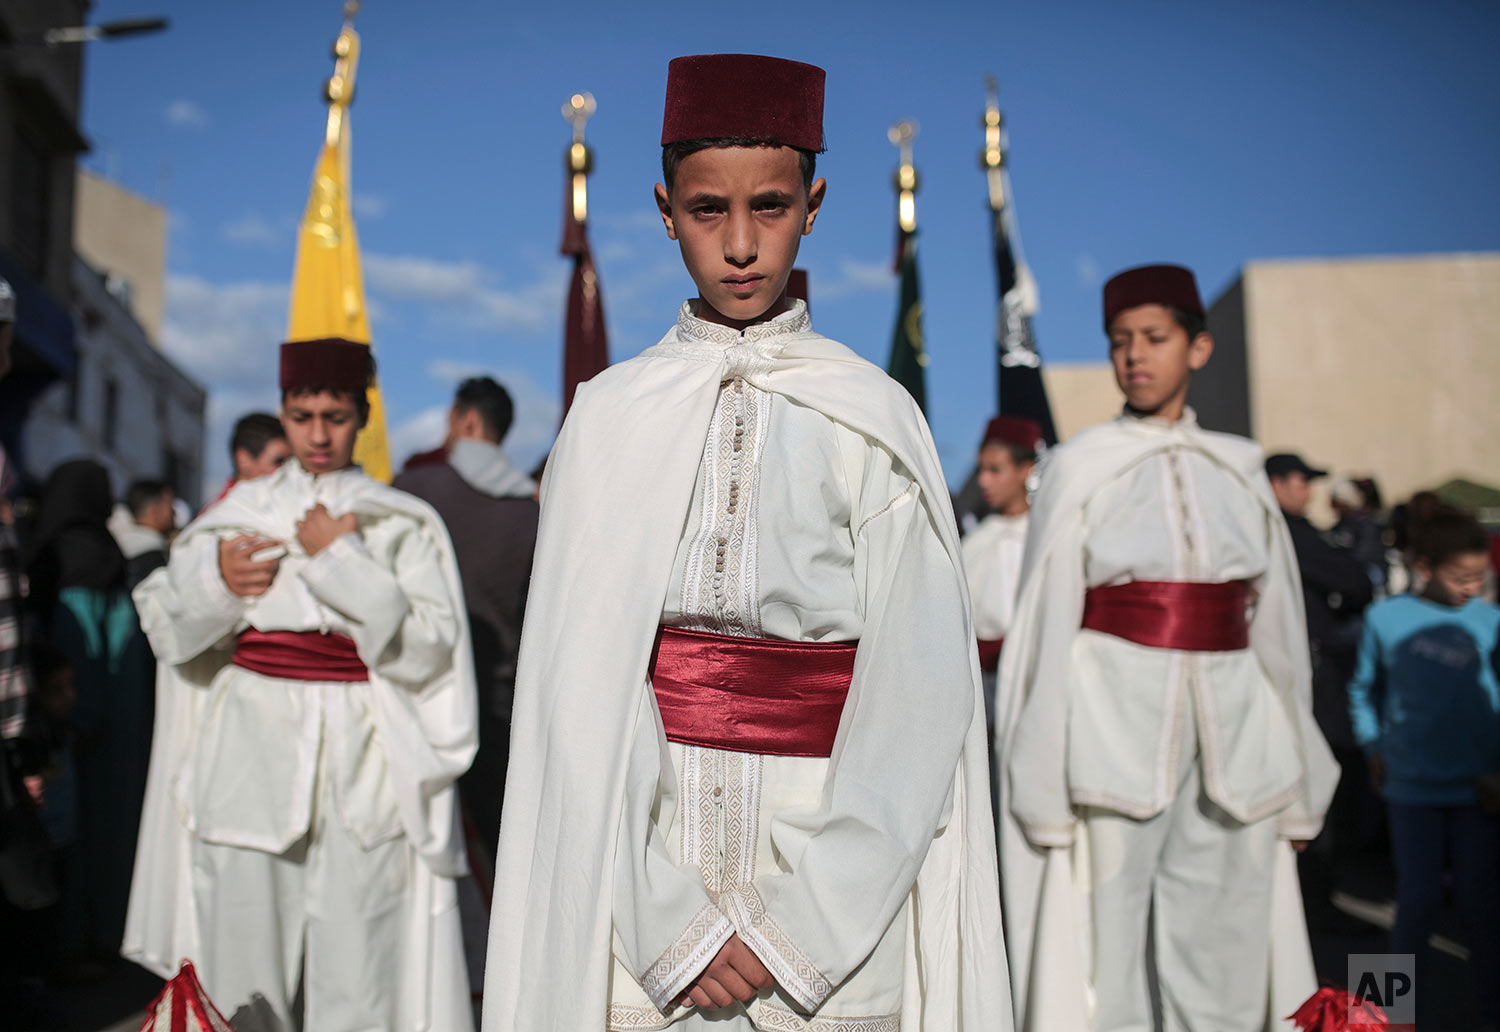 In this Thursday Nov. 30, 2017 photo, children take part in an annual parade celebrating the birth anniversary of Prophet Muhammad, in Sale, near Rabat, Morocco, Thursday. (AP Photo/Mosa'ab Elshamy)